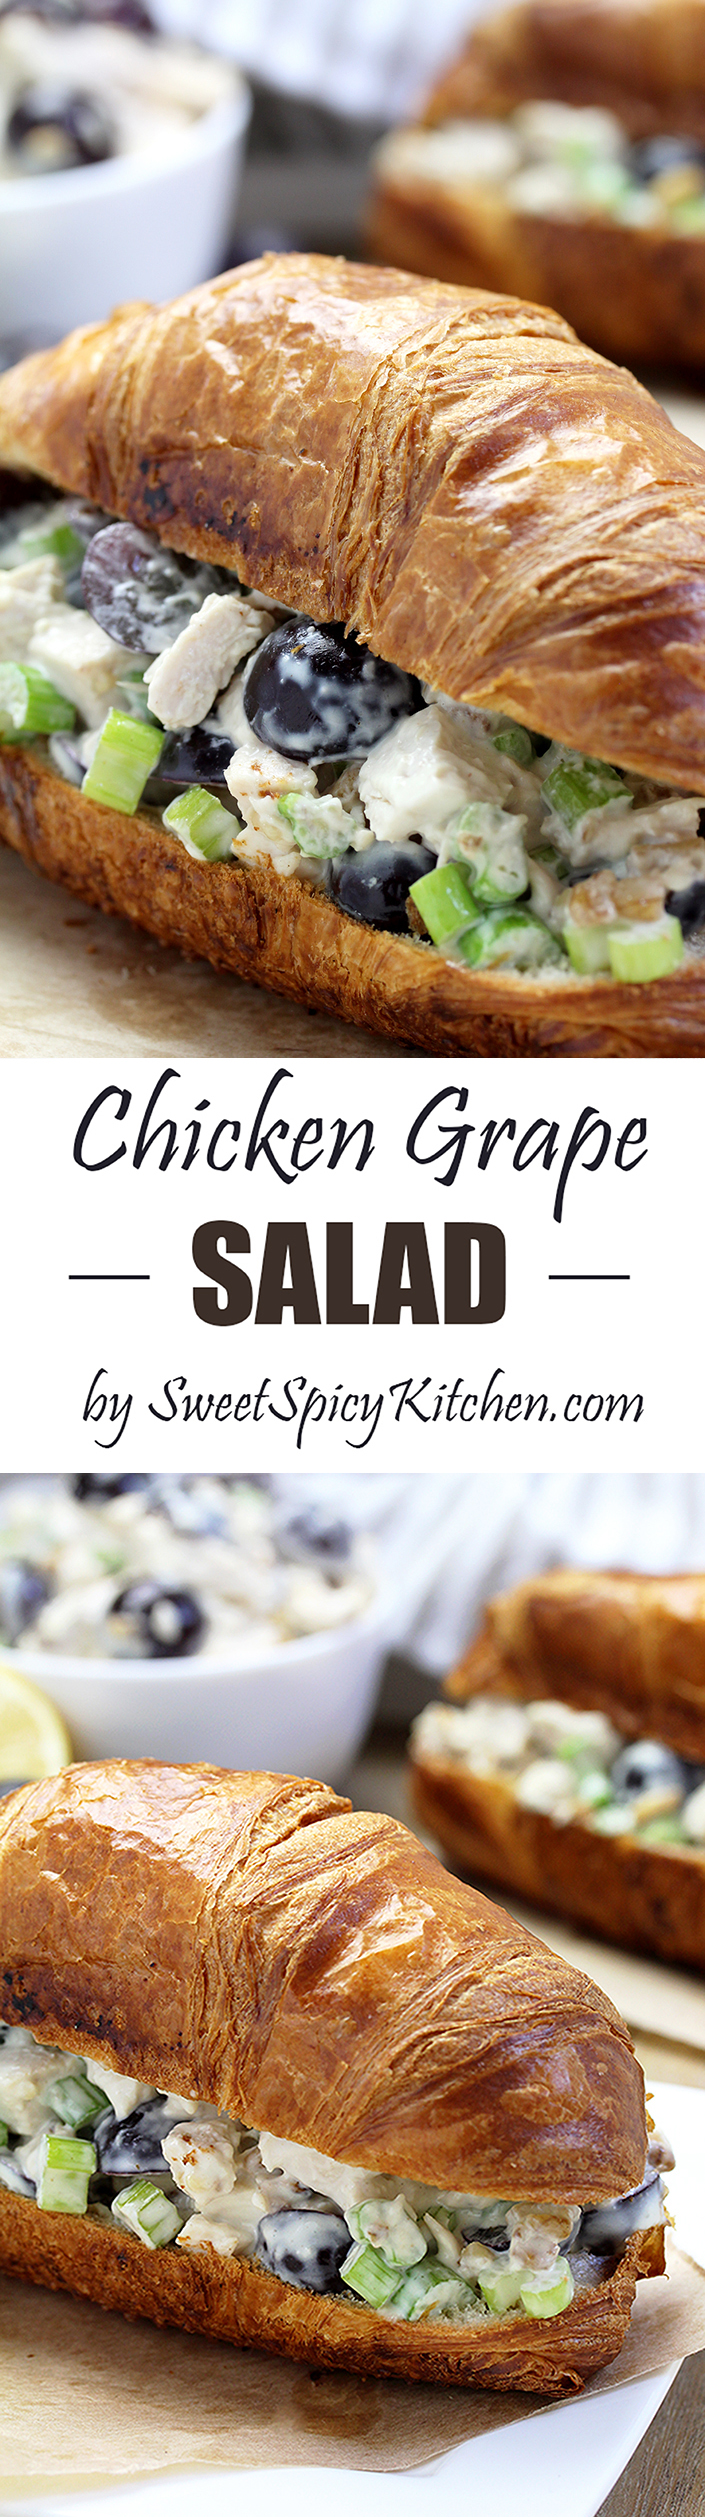 The Best Chicken Grape Salad is a delicious quick & easy salad with chicken, grapes, celery, walnuts/pecans and a dressing that makes it really special.